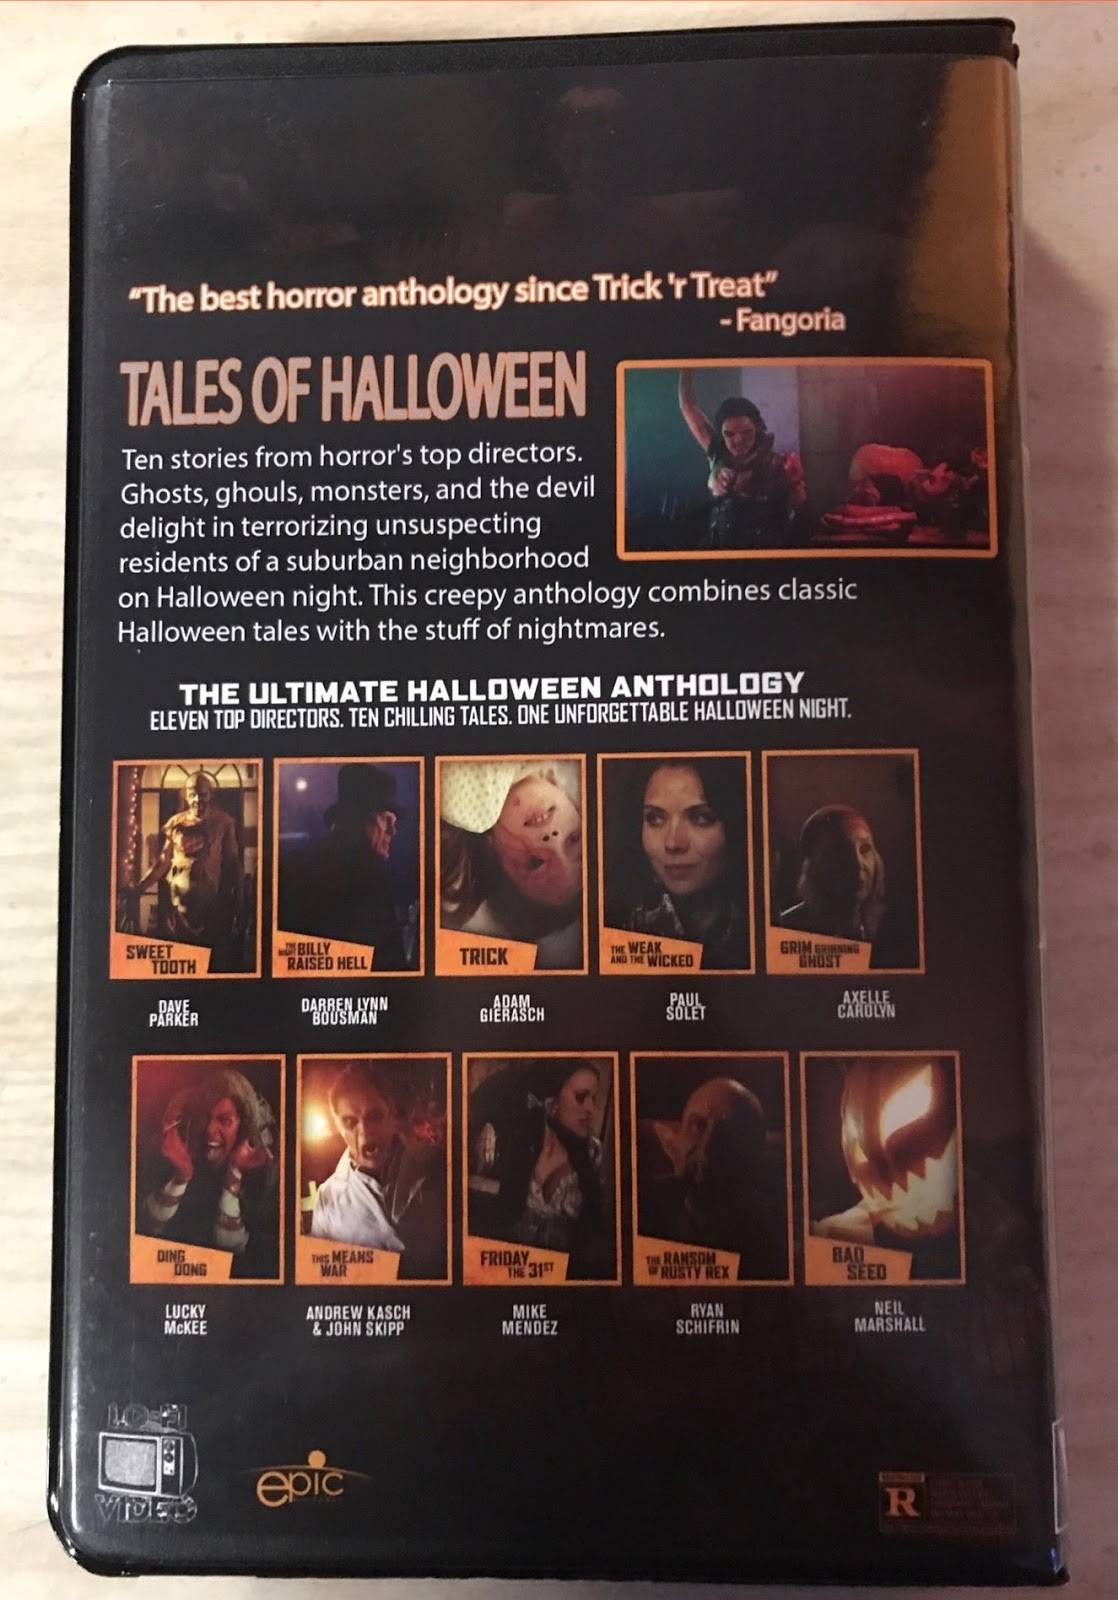 The Horrors of Halloween: TALES OF HALLOWEEN (2015) VHS, DVD and ...